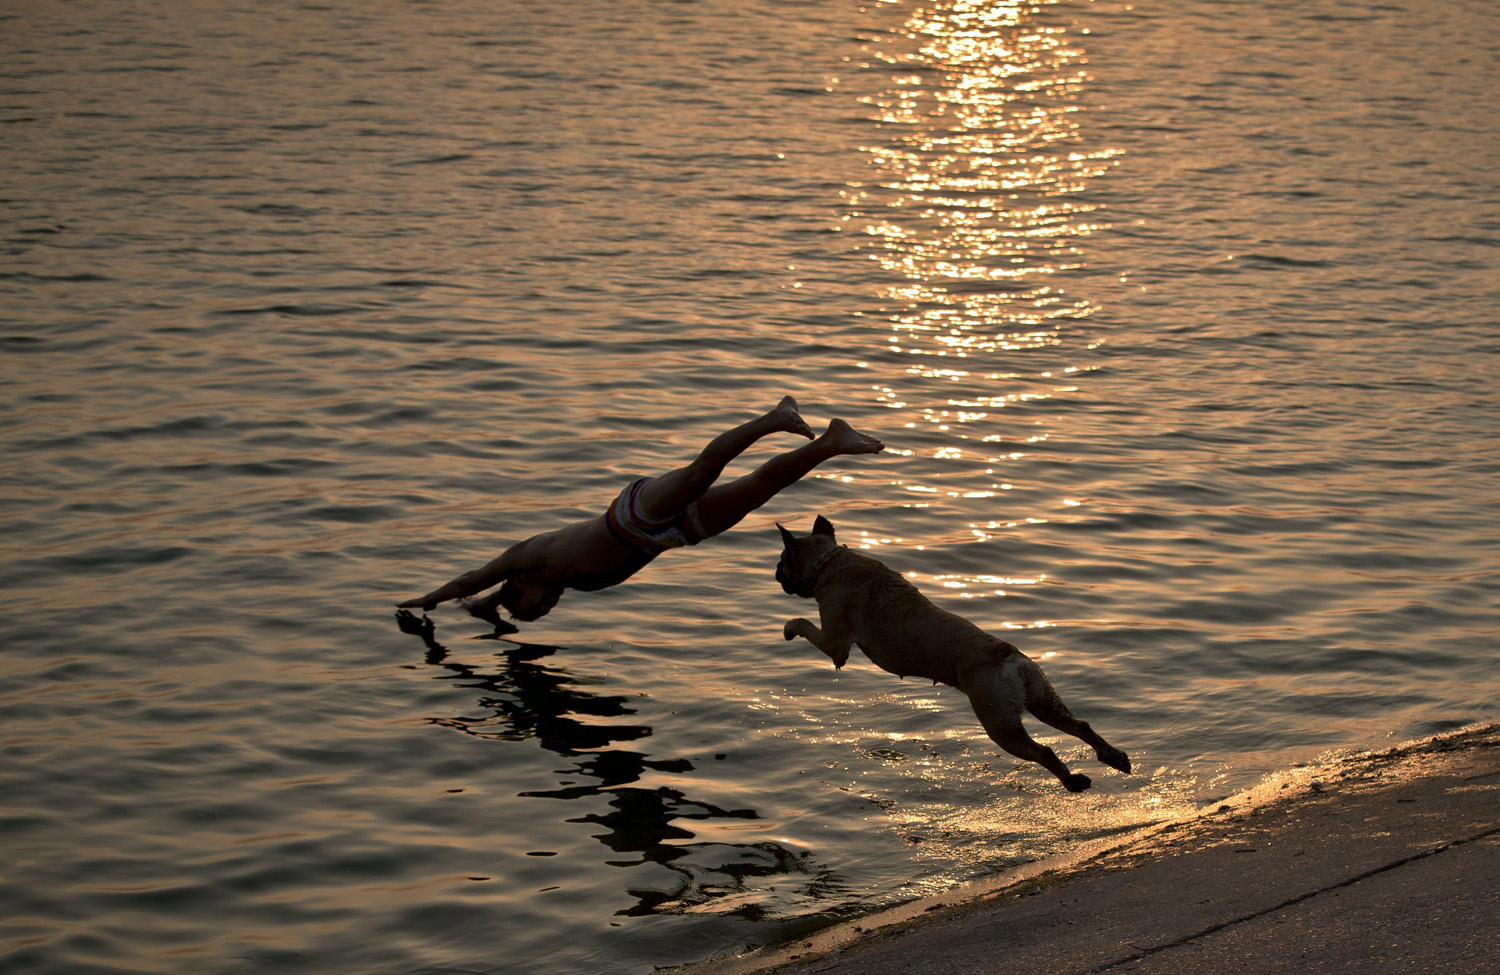 Aisha the dog follows her owner as he jumps into a lake at sunset in Bucharest, Romania on August 12, 2014.